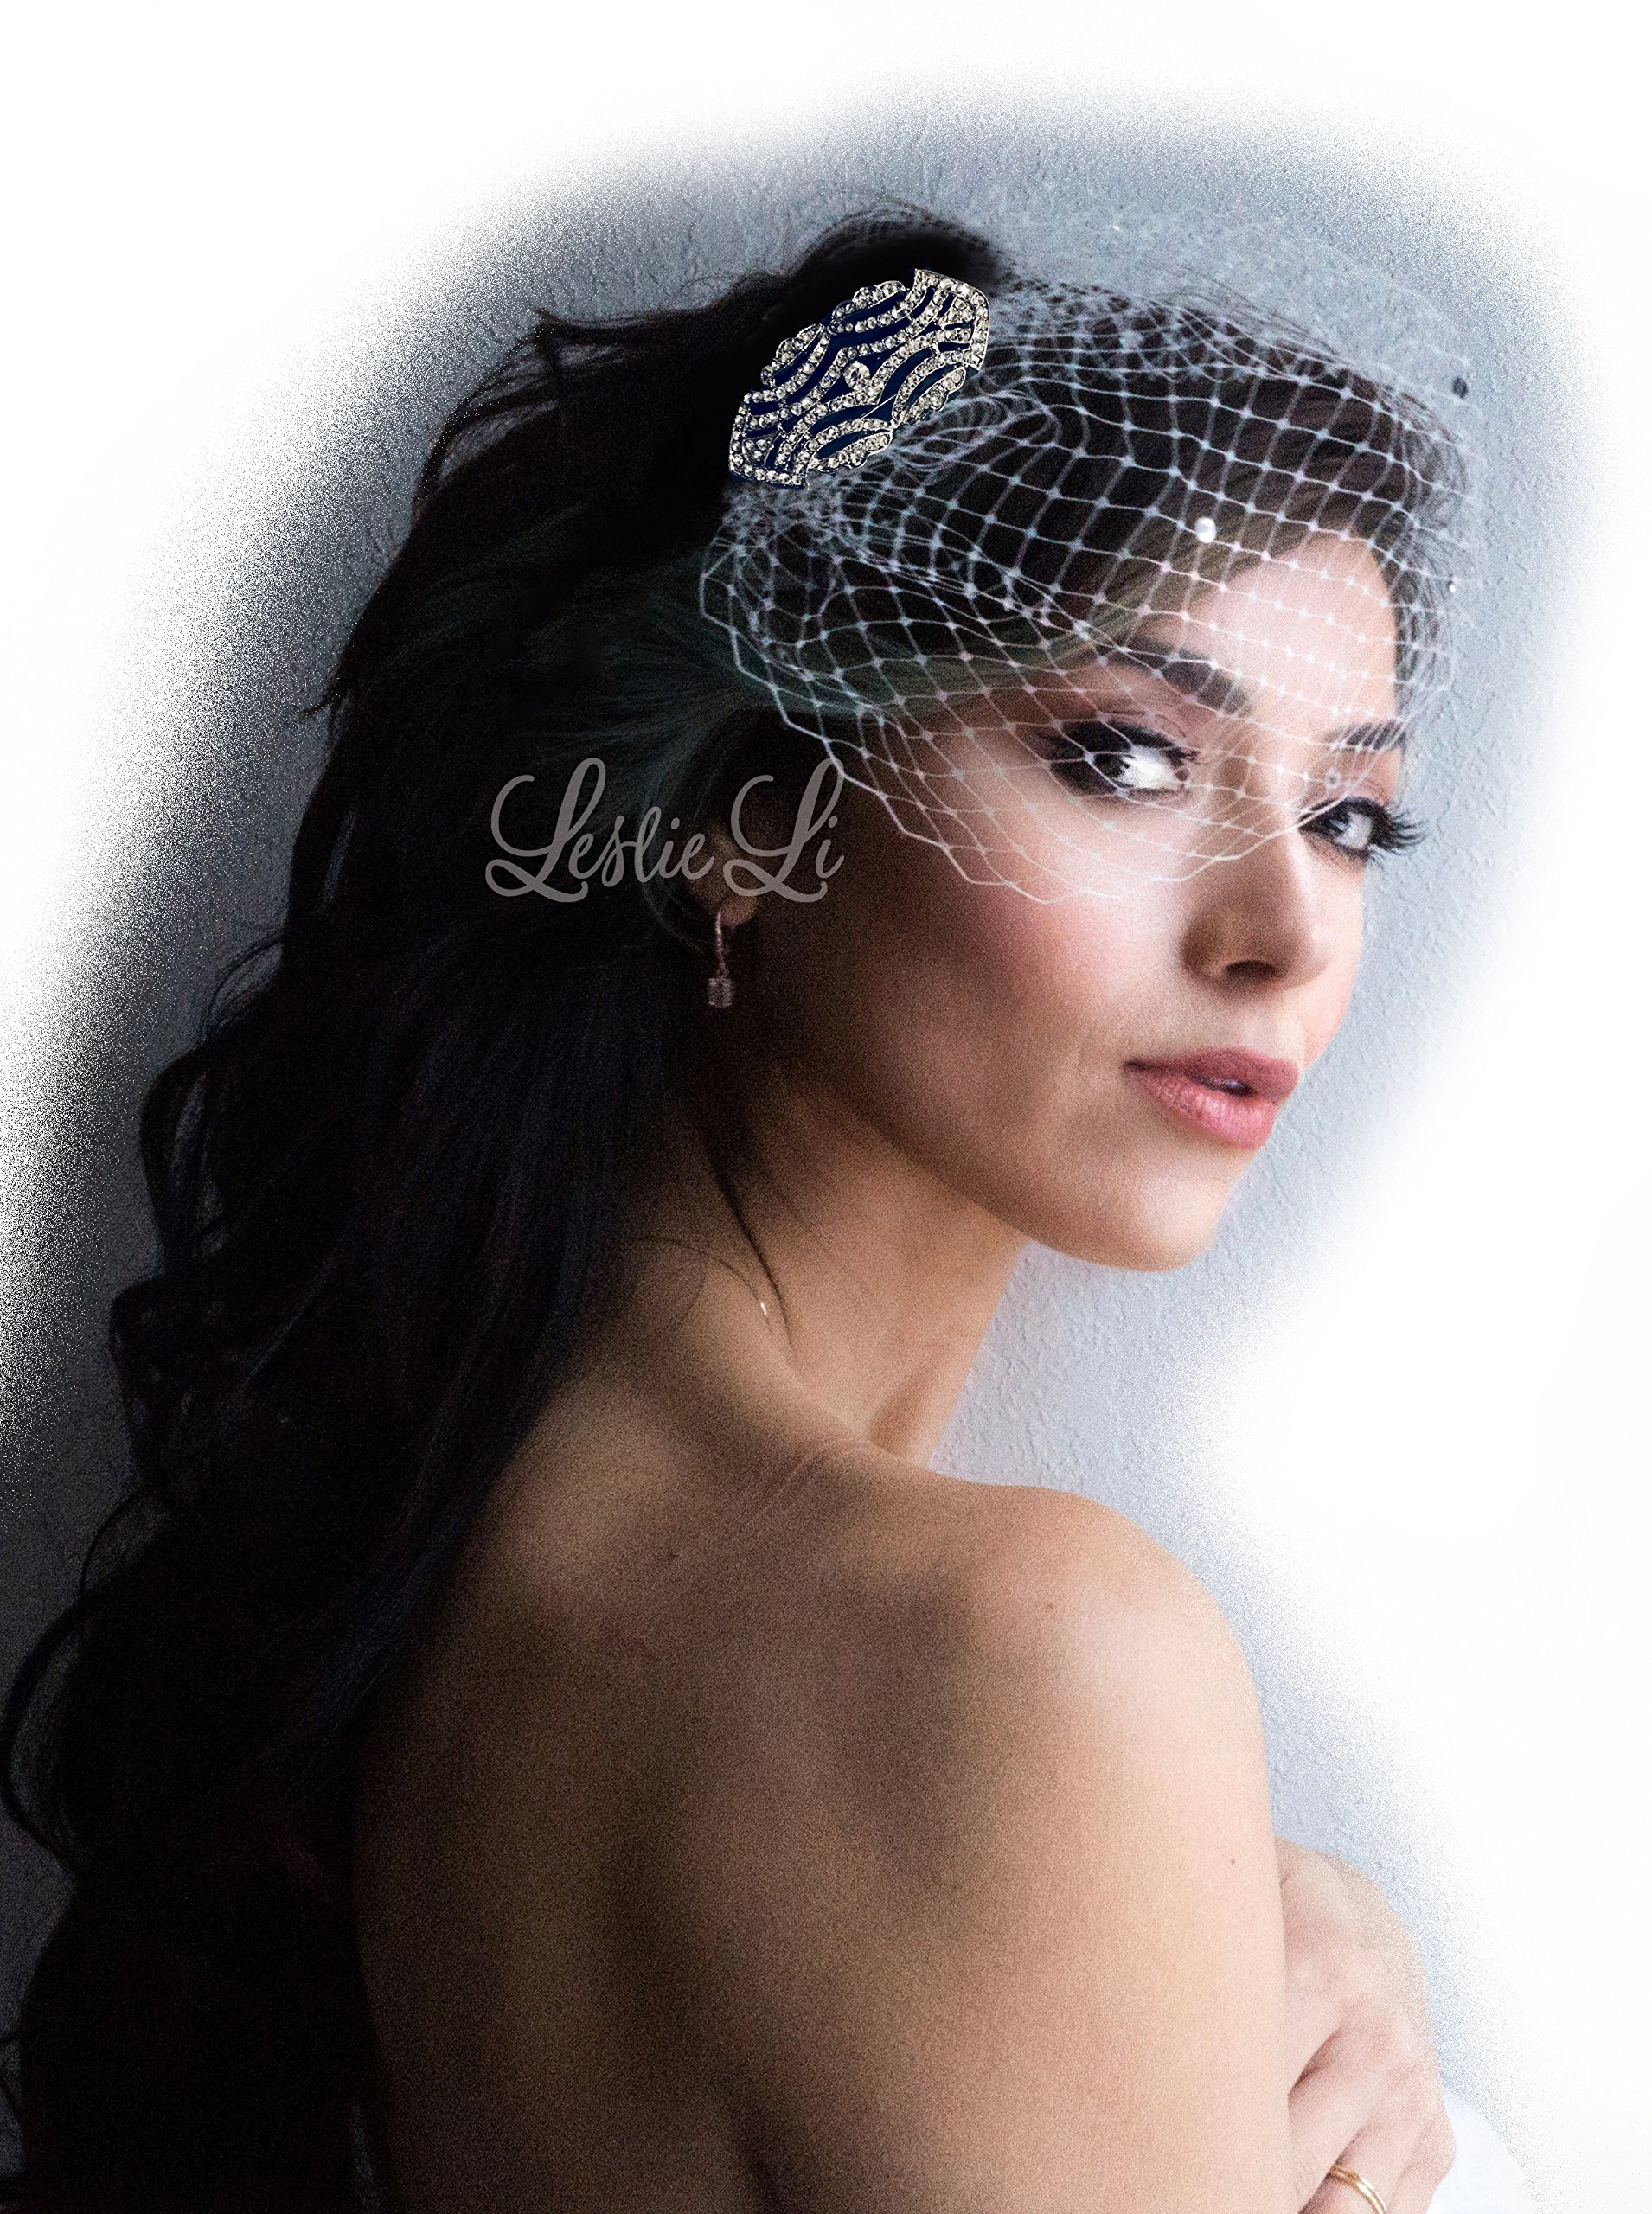 Leslie Li Women's Gatsby Art Deco Style Brooch and Petite Bridal Birdcage Veil French Net & Free Styling One Size Ivory/Silver 27-533